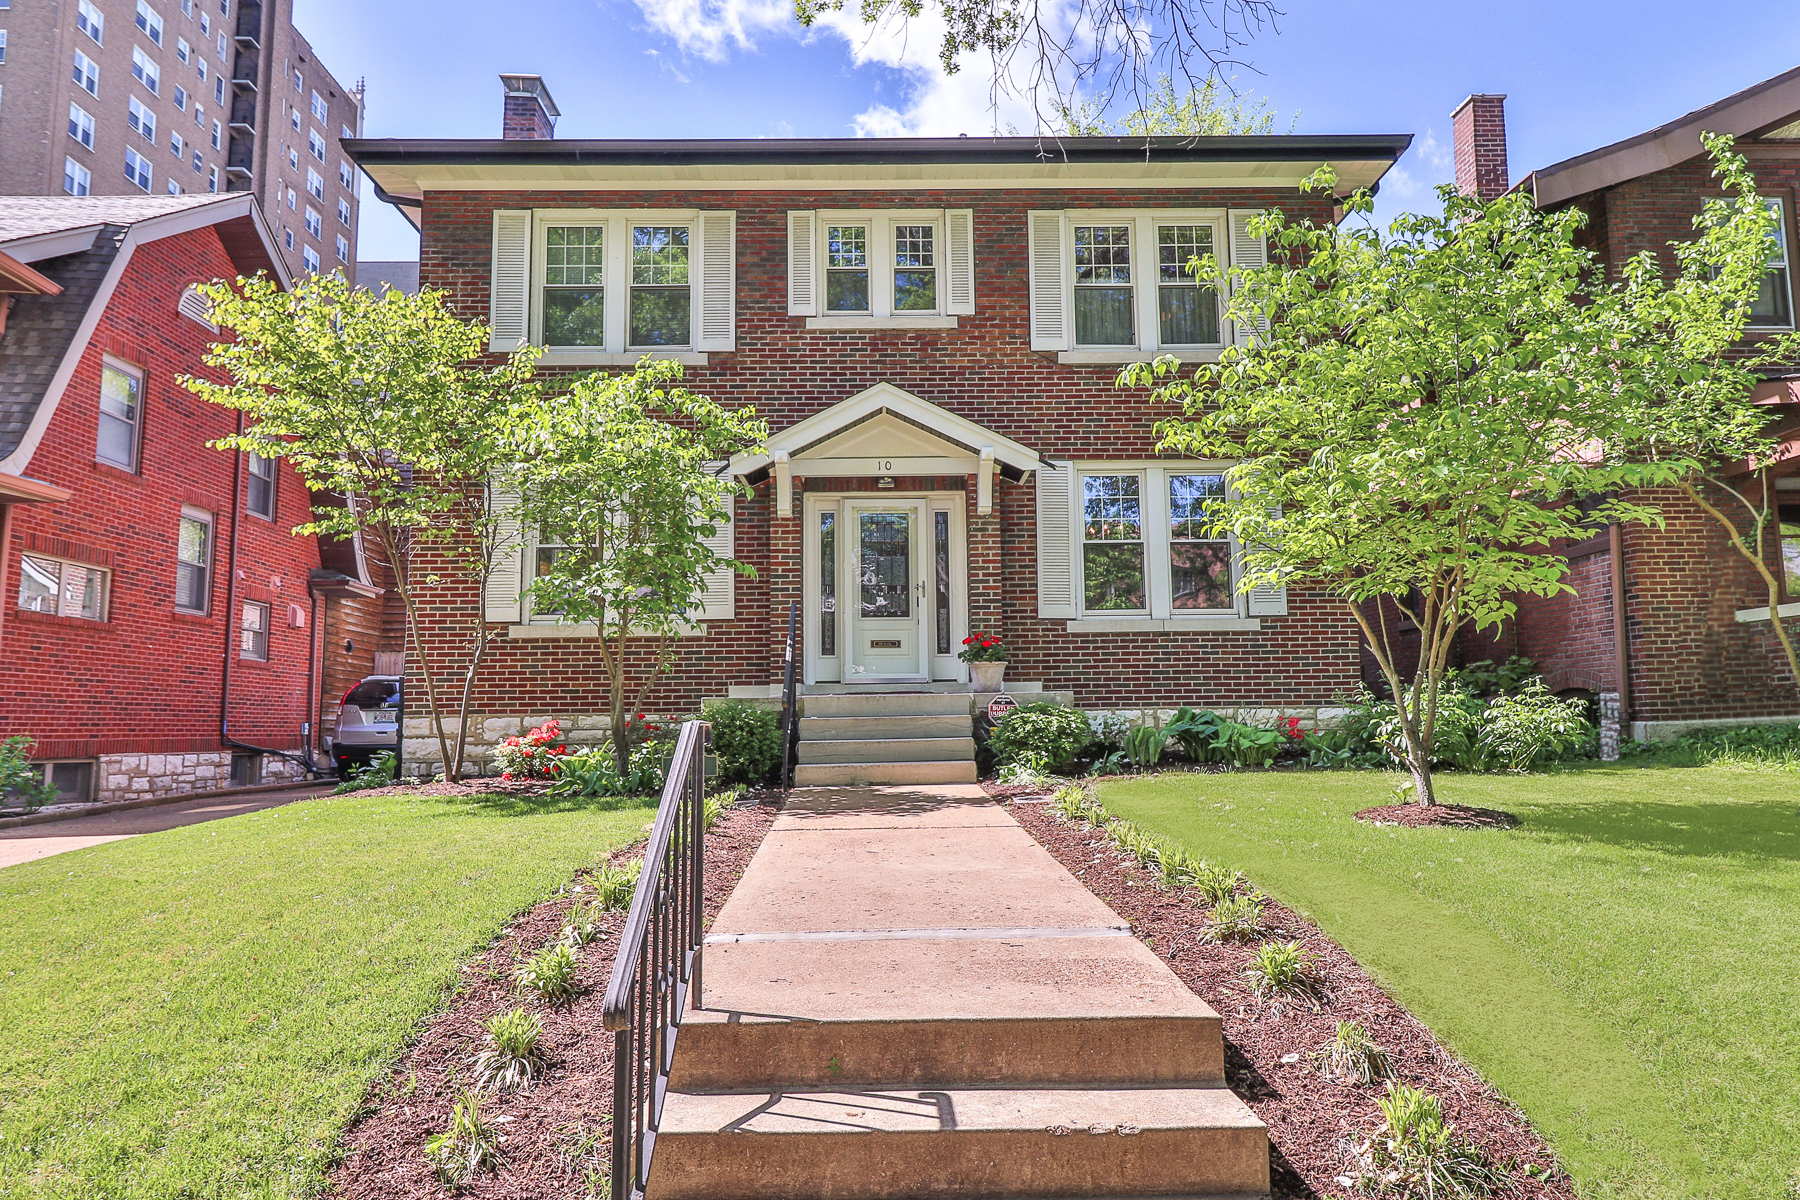 Single Family Home for Sale at Arundel 10 Arundel Place St. Louis, Missouri, 63105 United States